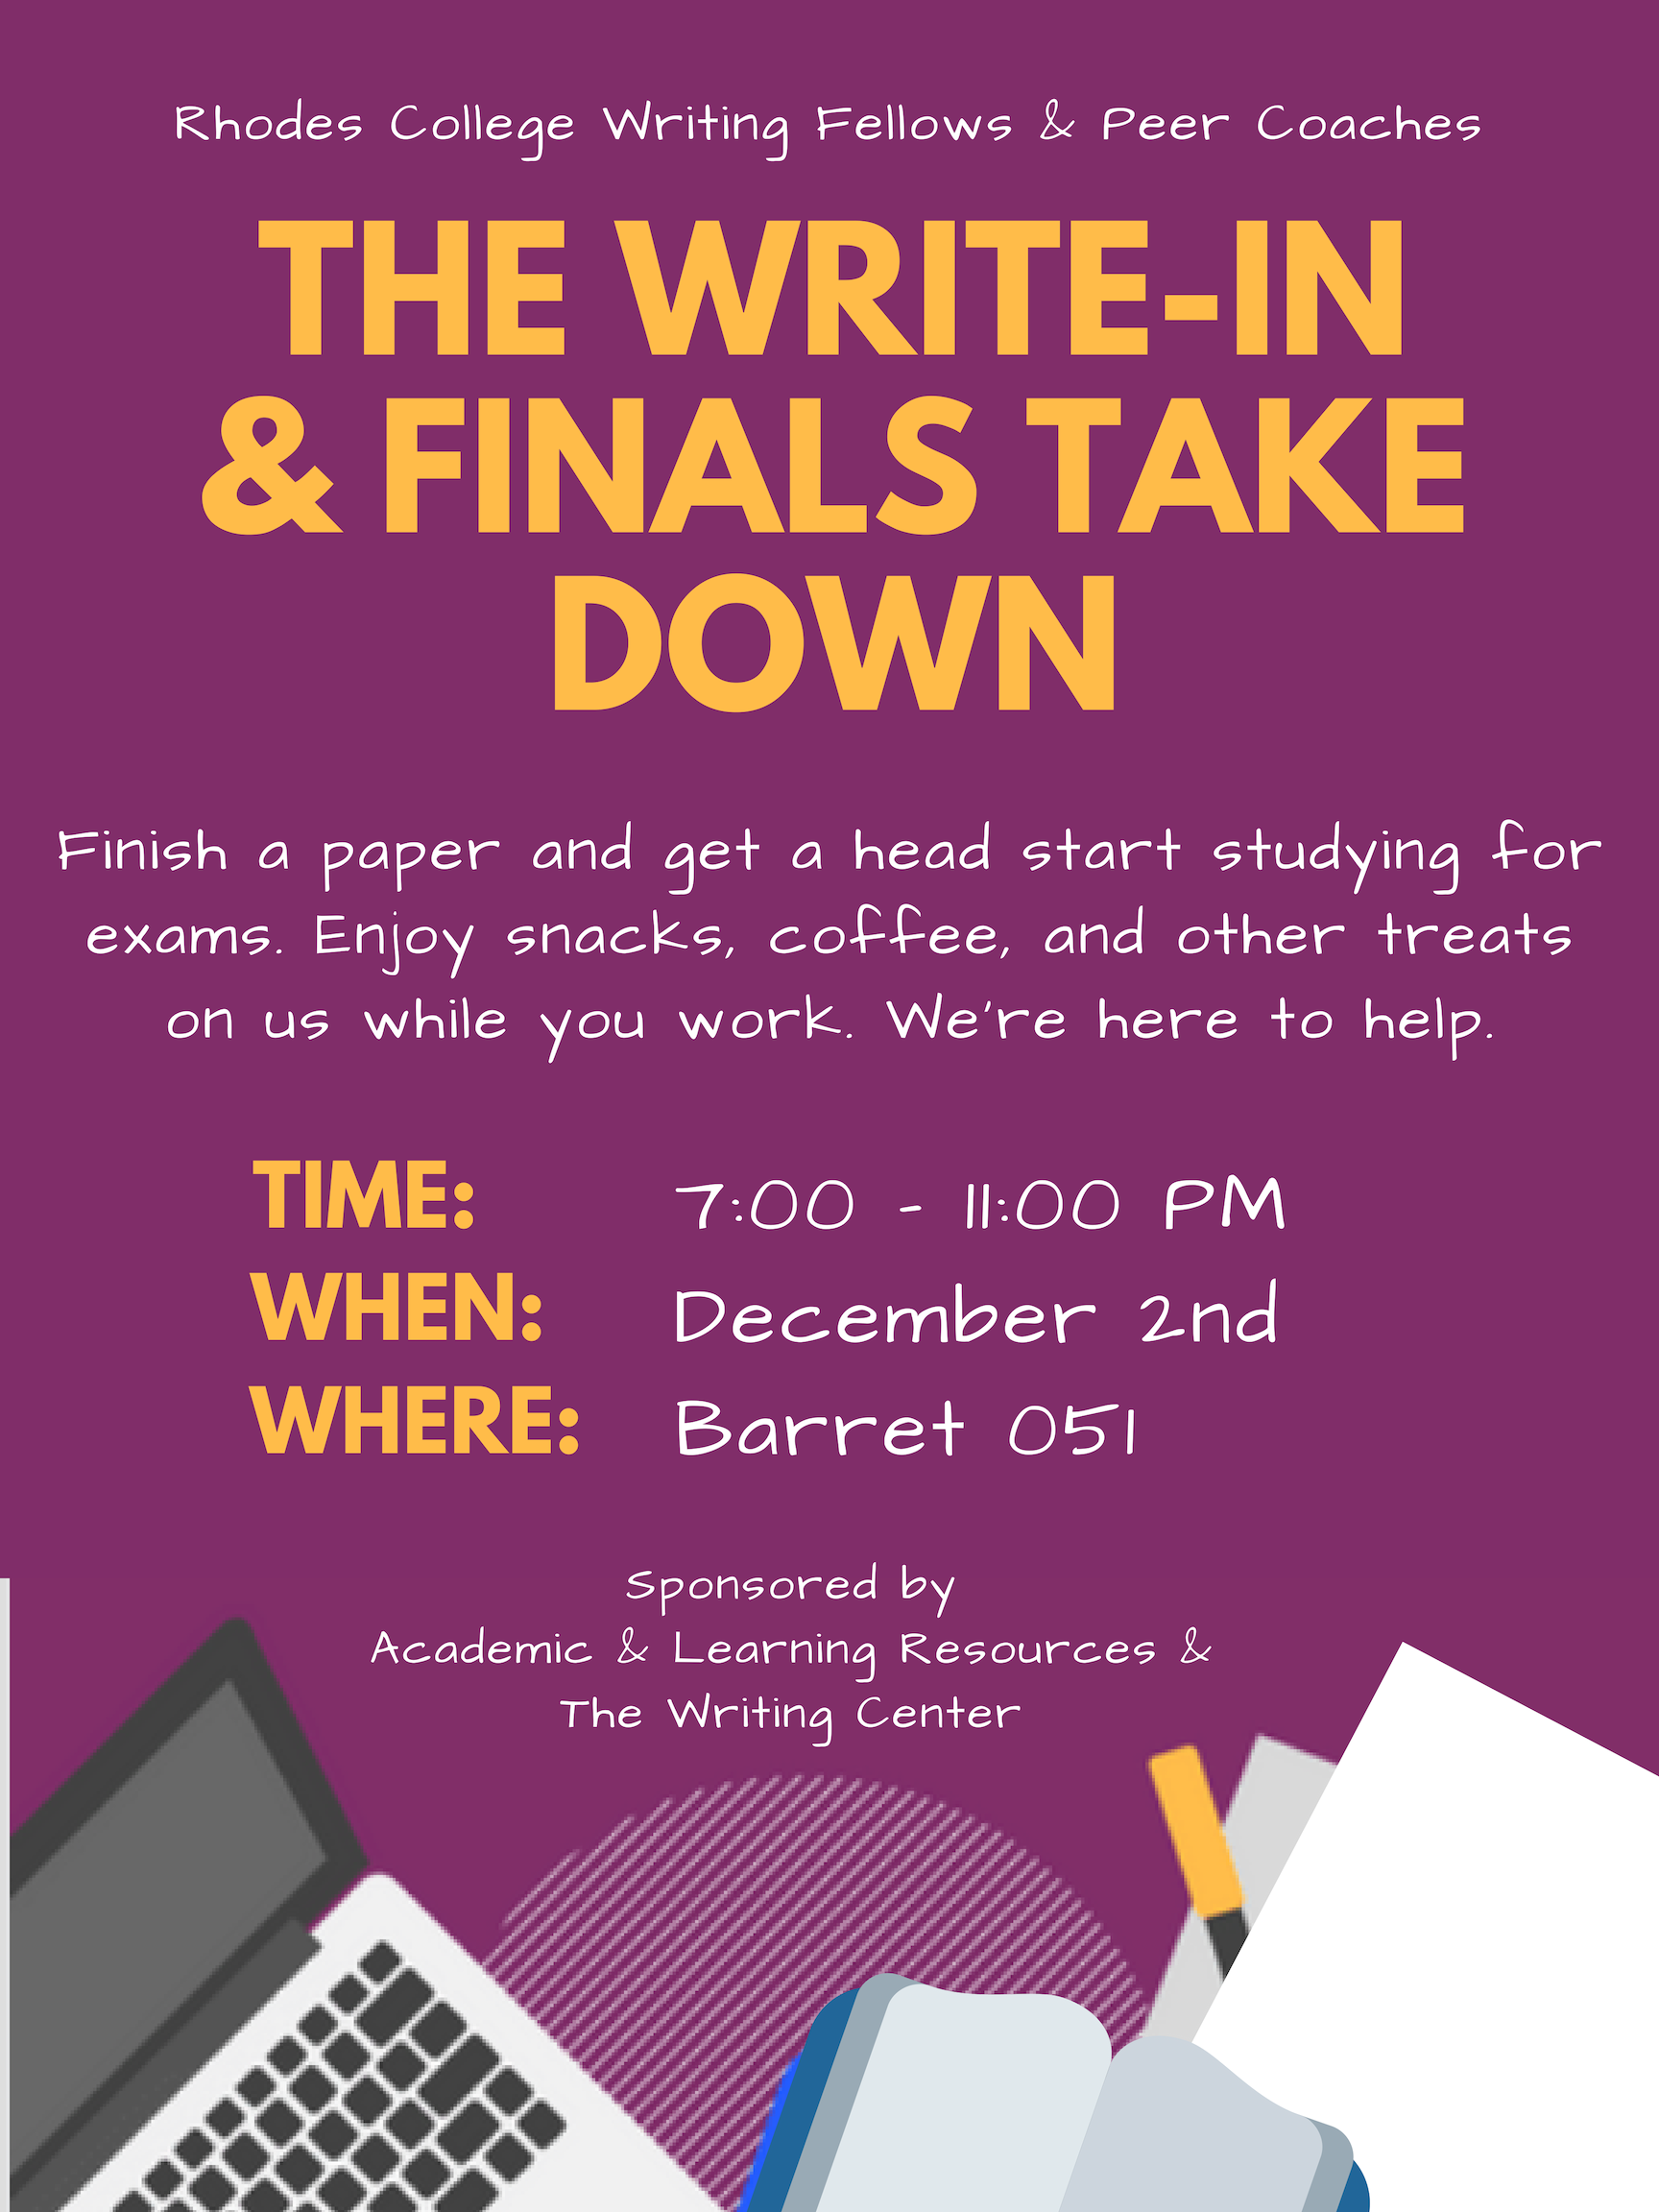 The Write-In & Finals Take Down | Rhodes College